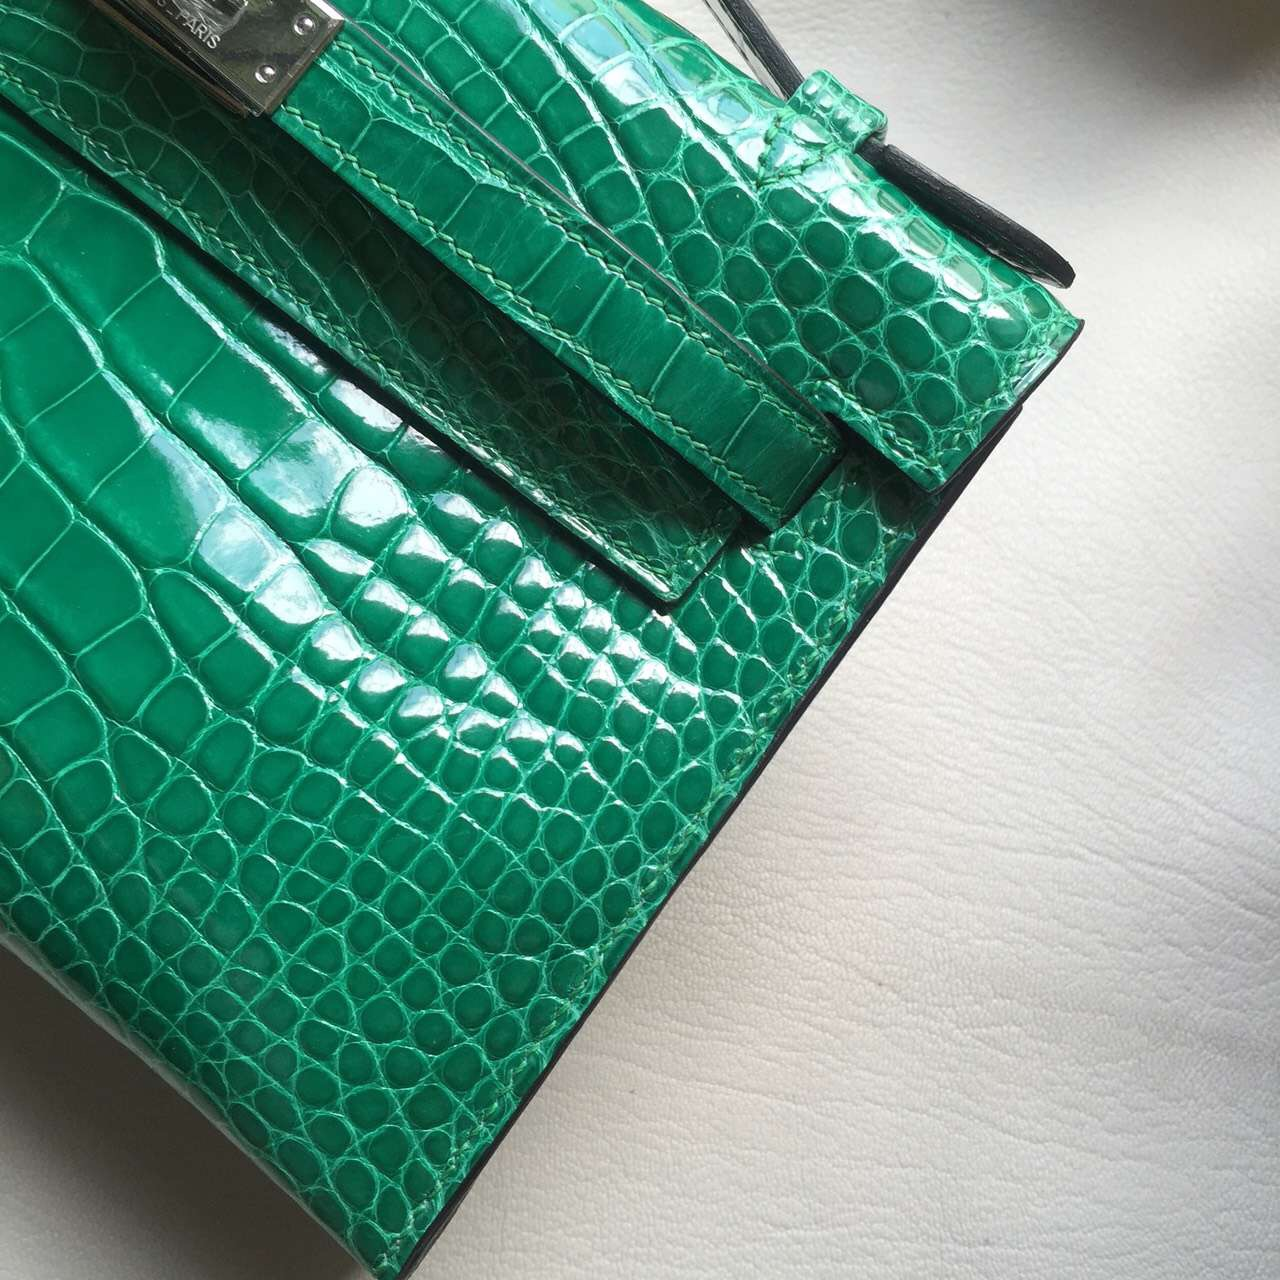 Hand Stitching Hermes 6Q Emerald Green Crocodile Shiny Leather Mini Kelly